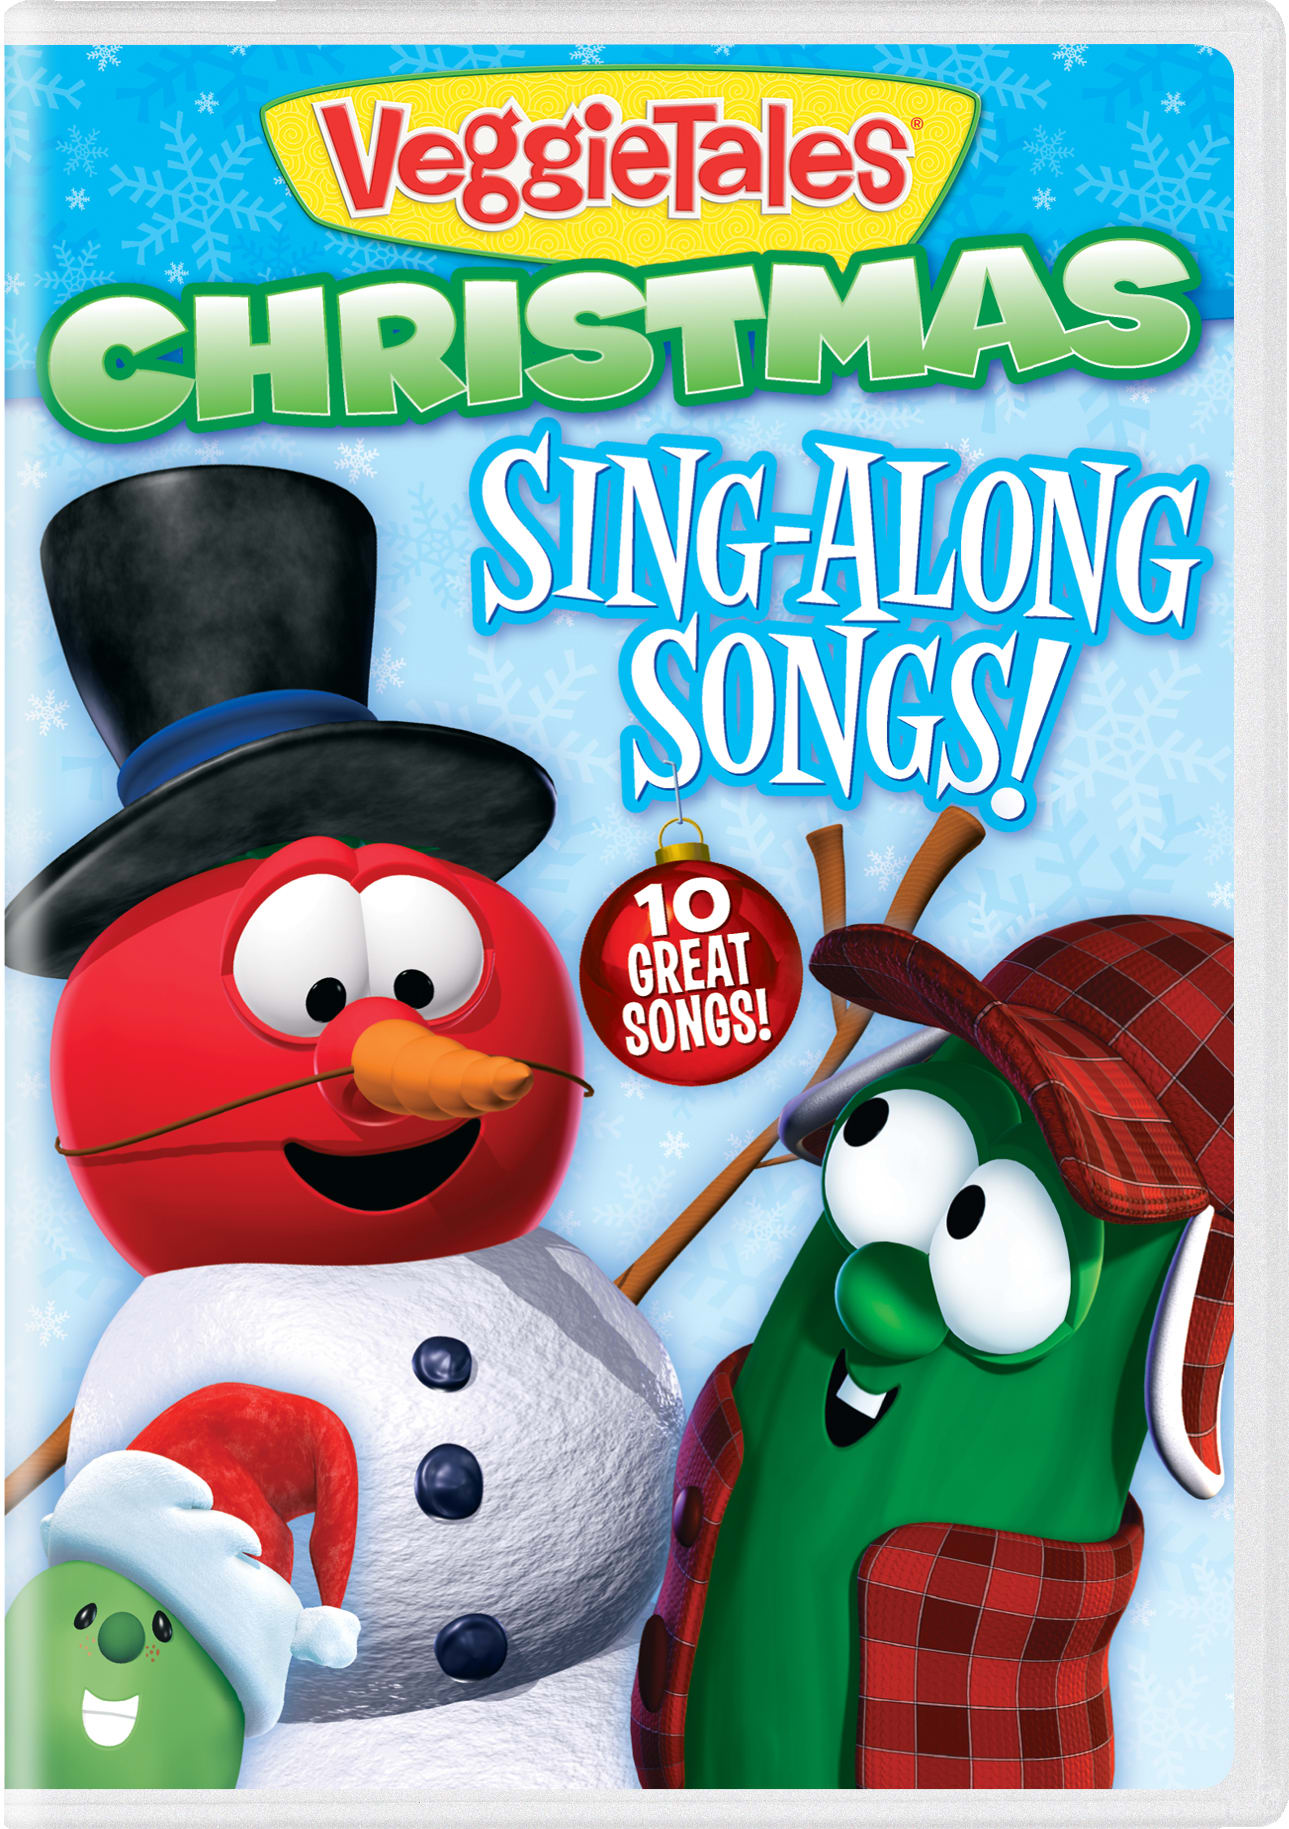 VeggieTales Christmas Sing-along Songs! [DVD]